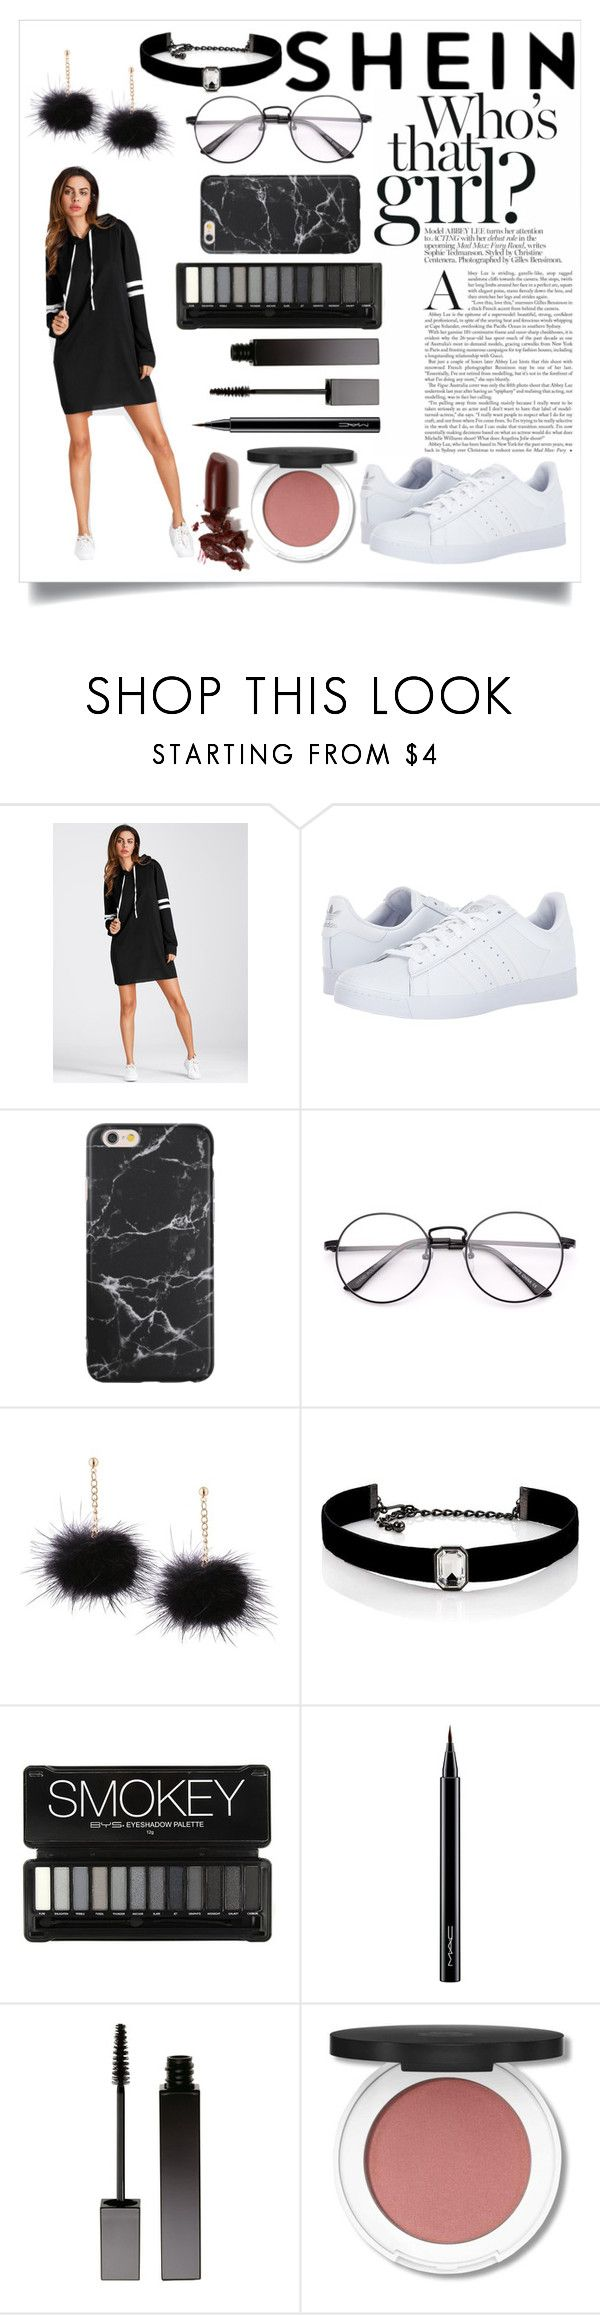 """""""Shein"""" by kitty-cat130 ❤ liked on Polyvore featuring adidas, Kenneth Jay Lane, MAC Cosmetics, Serge Lutens, LAQA & Co. and vintage"""